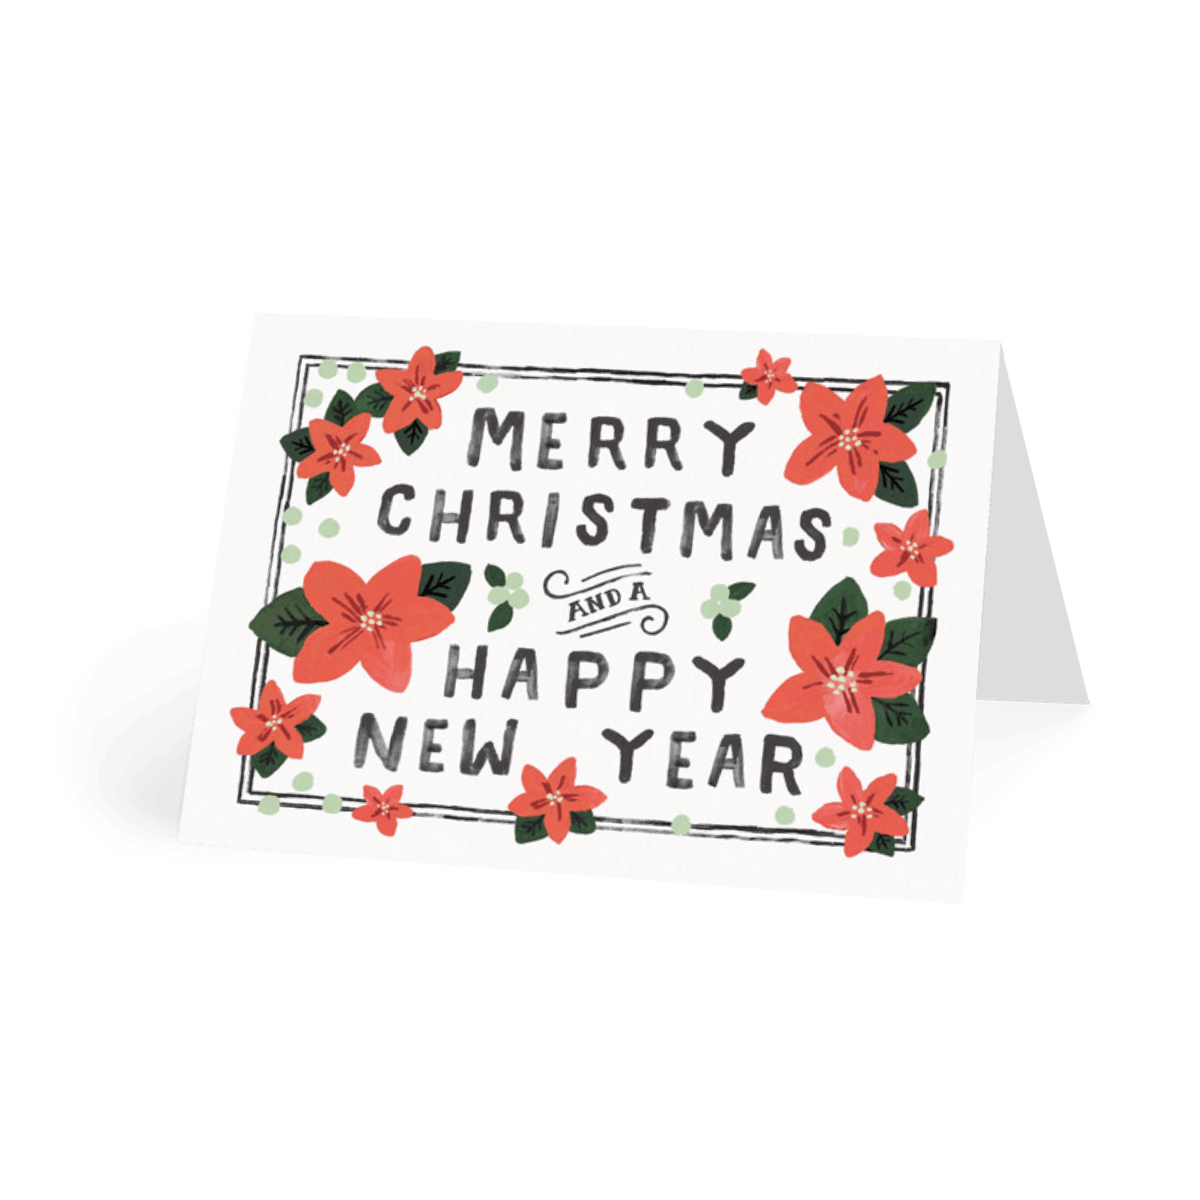 Https%3a%2f%2fwww.papier.com%2fproduct image%2f10002%2f14%2fchristmas poinsettia 2543 front 1570649244.png?ixlib=rb 1.1